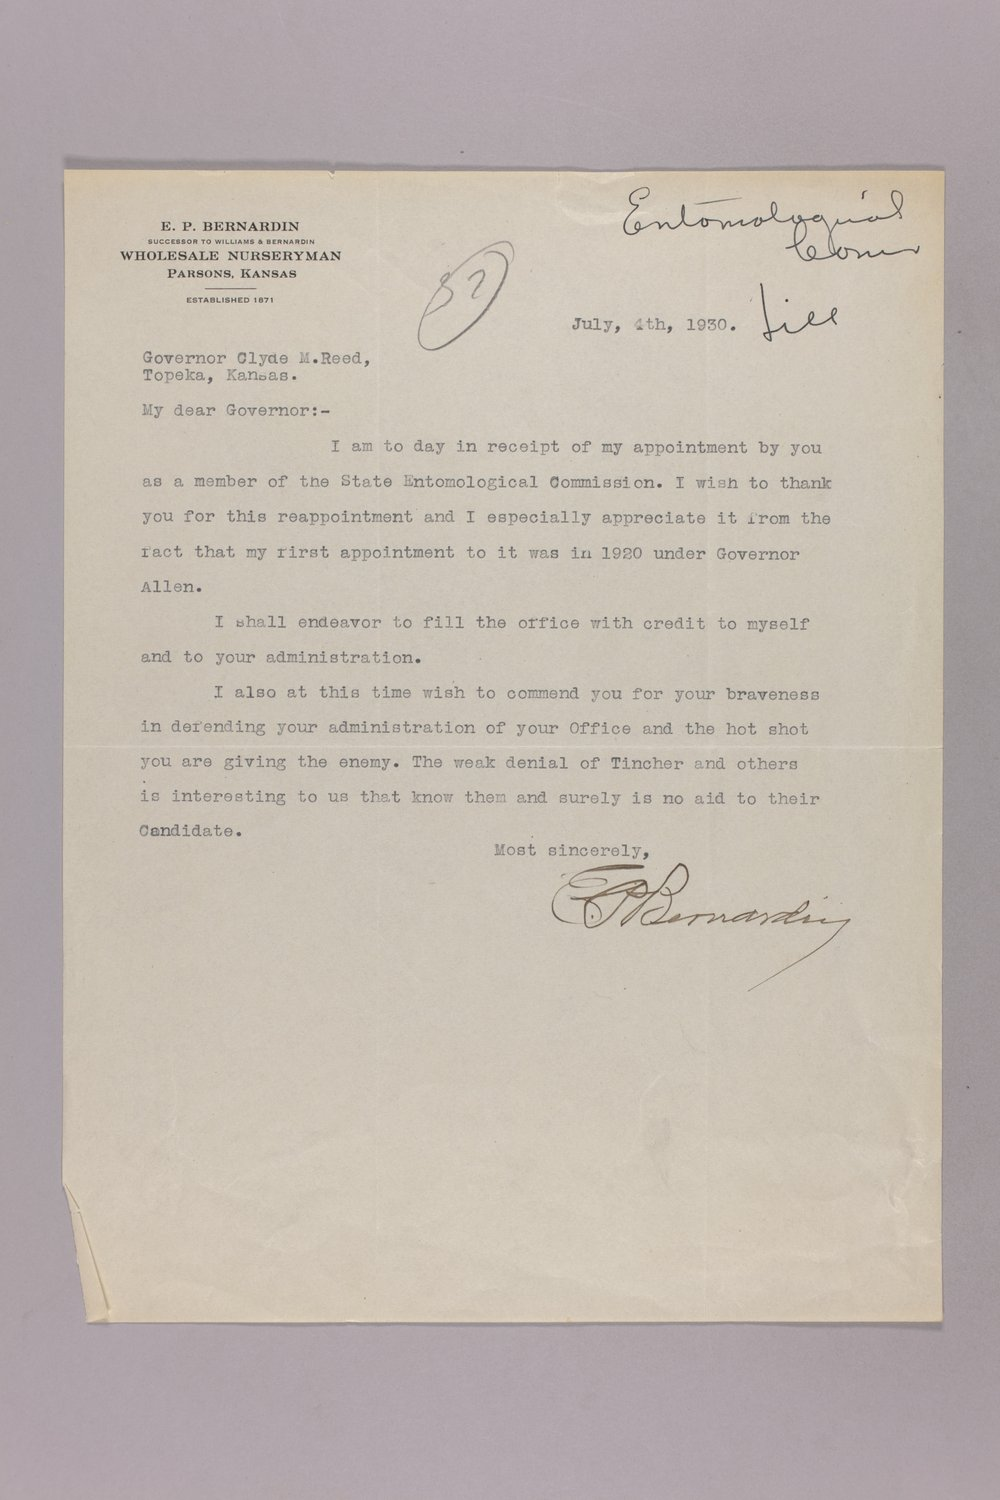 Governor Clyde M. Reed correspondence, Entomological Commission - 1